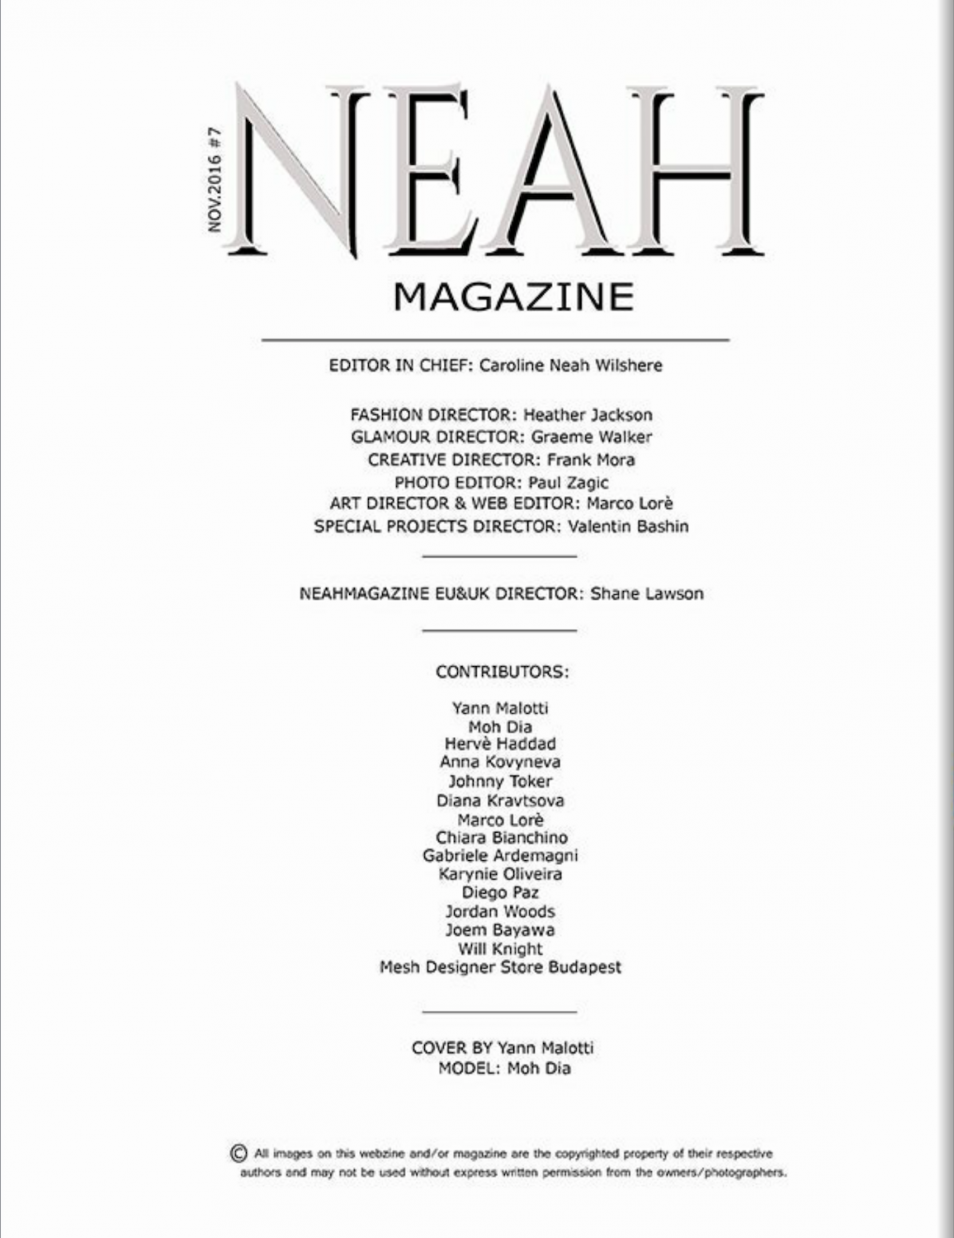 Neah Magazine #2 Dec/Jan 2016/2017 New Zealand/Australia